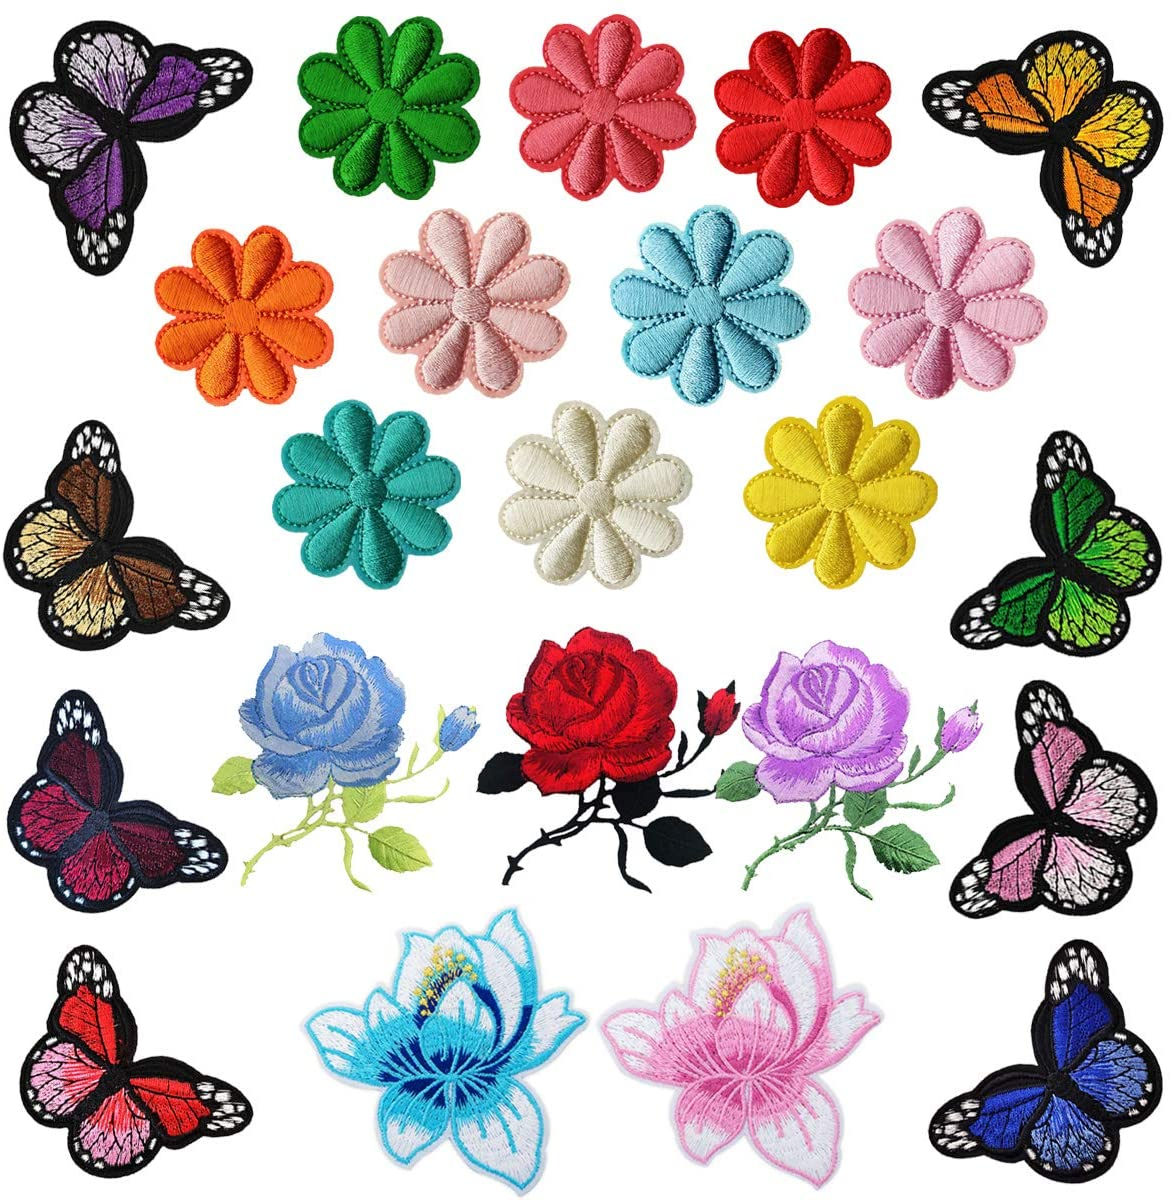 Woohome Iron on Patches 23 PCS Rose Flower Butterfly Patch Embroidered Iron on Applique Patch for Craft, Sewing, Clothing